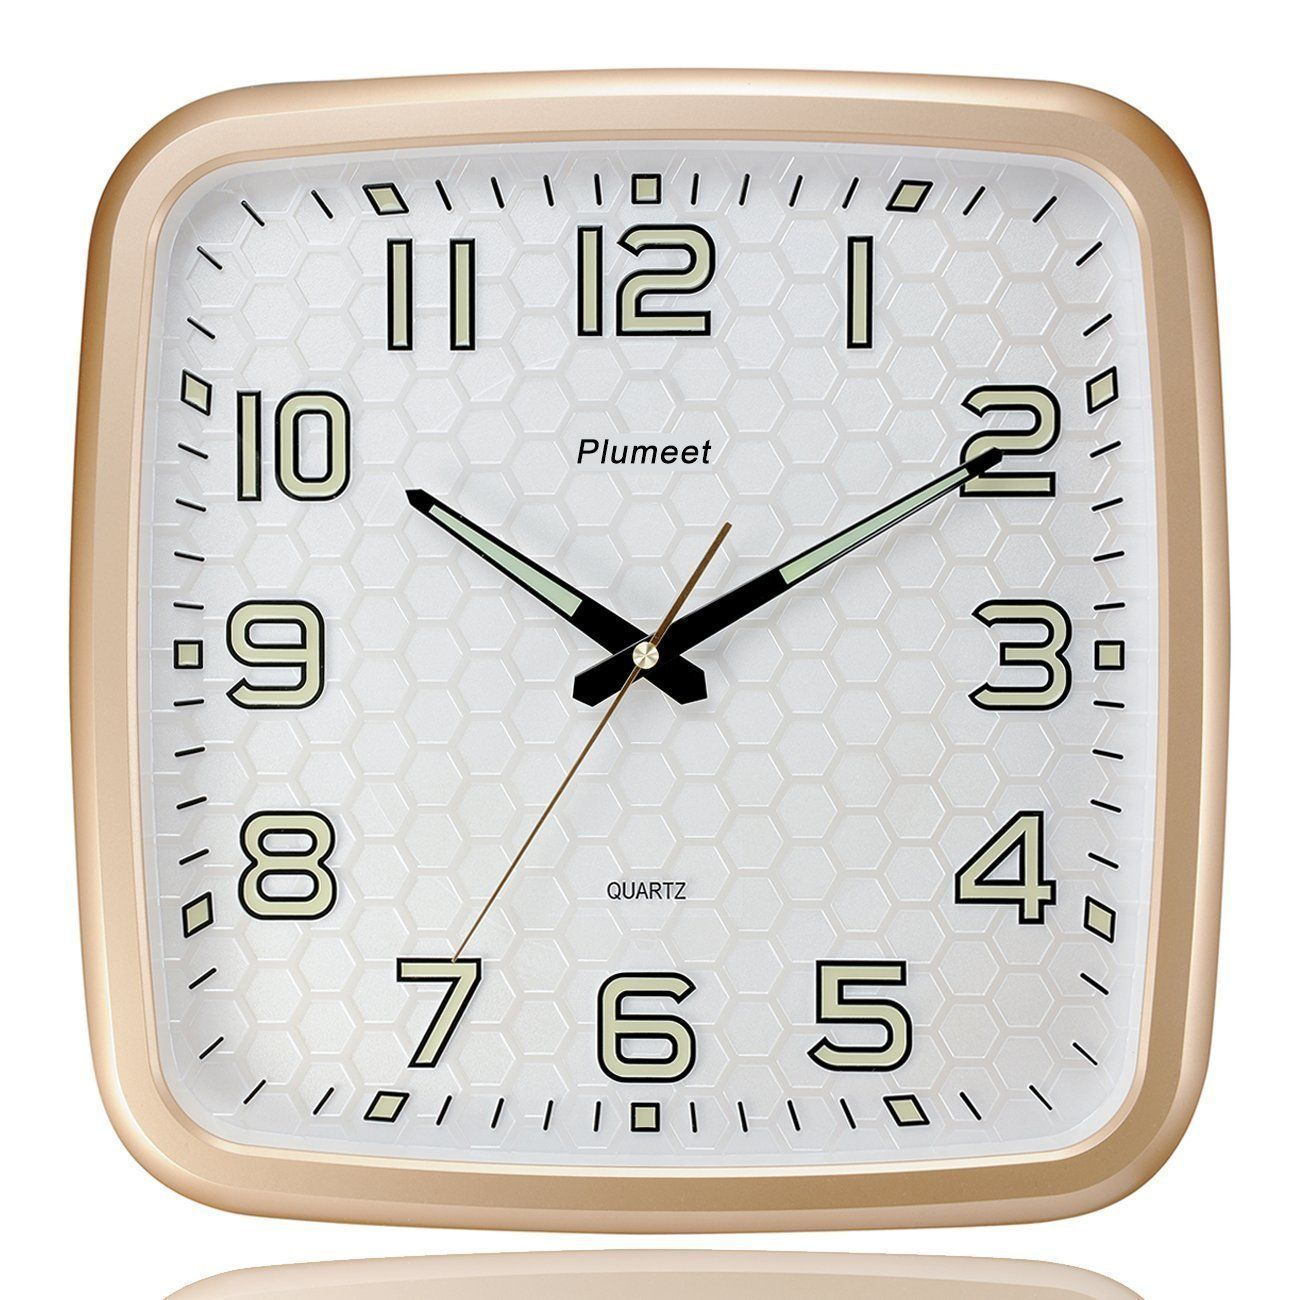 Plumeet 14 Inch Wall Clock With Classics And Specified Design Of Silent Non Ticking Night Lights For Indoor Kitchen Large Num Wall Clock Clock Retro Wall Clock